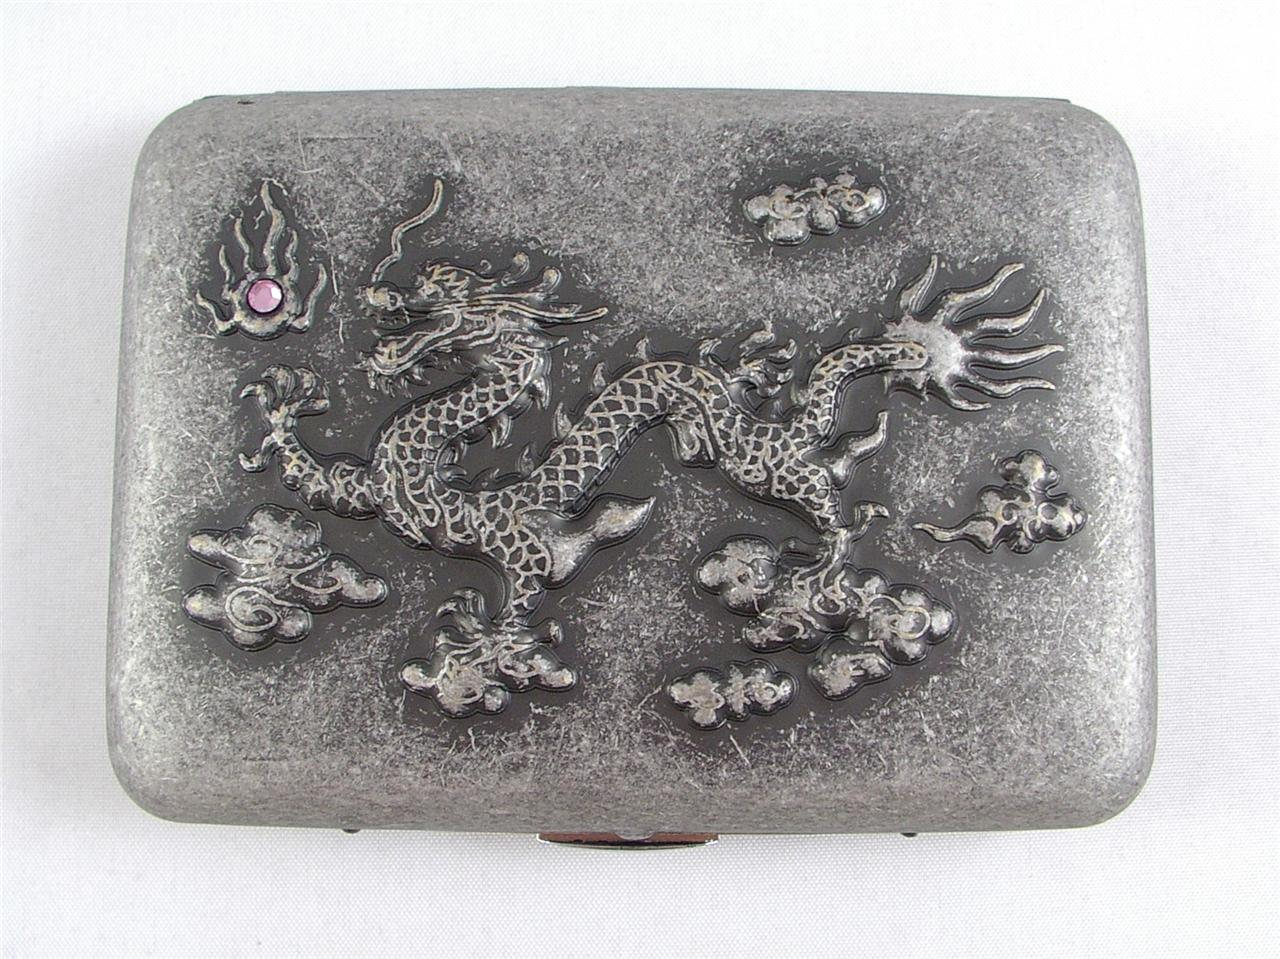 BUSINESS-CARD-CASE-CIGARETTE-TIN-HOLDER-MYTHICAL-DRAGON-PINK-GEM-METAL-NEW-BOXED